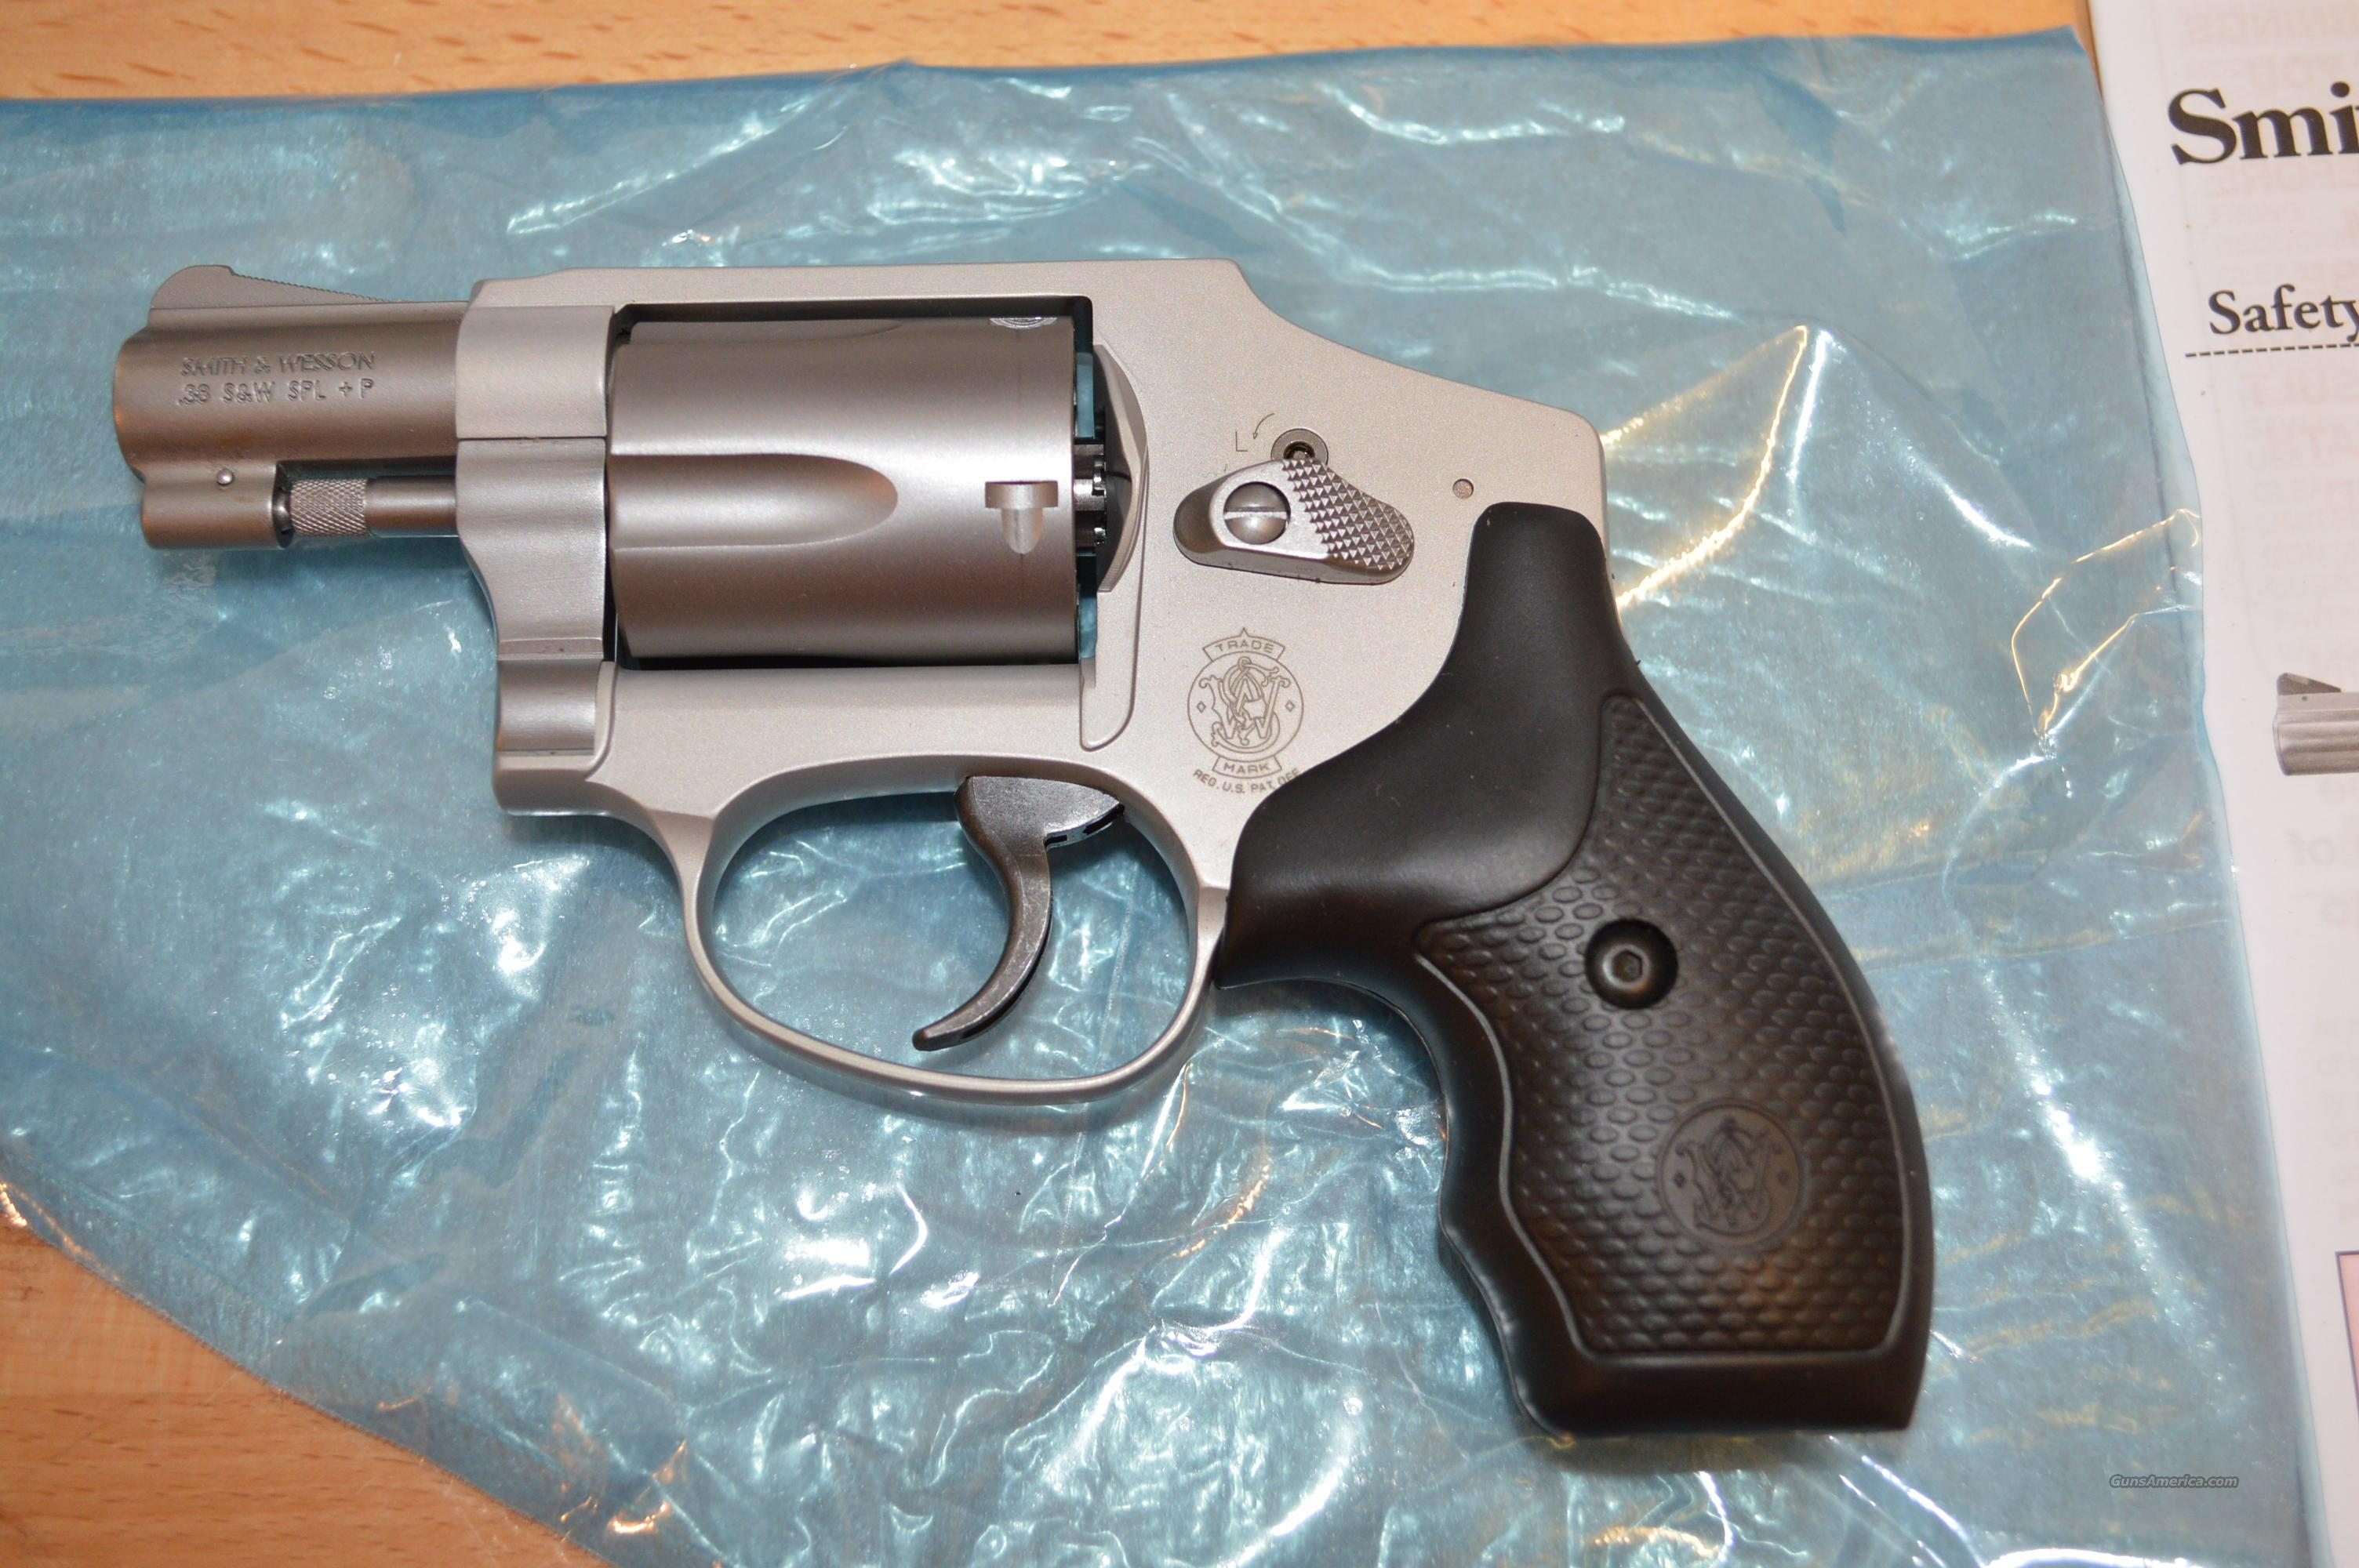 CLEARANCE SALE! Smith & Wesson 642  Guns > Pistols > Smith & Wesson Revolvers > Pocket Pistols